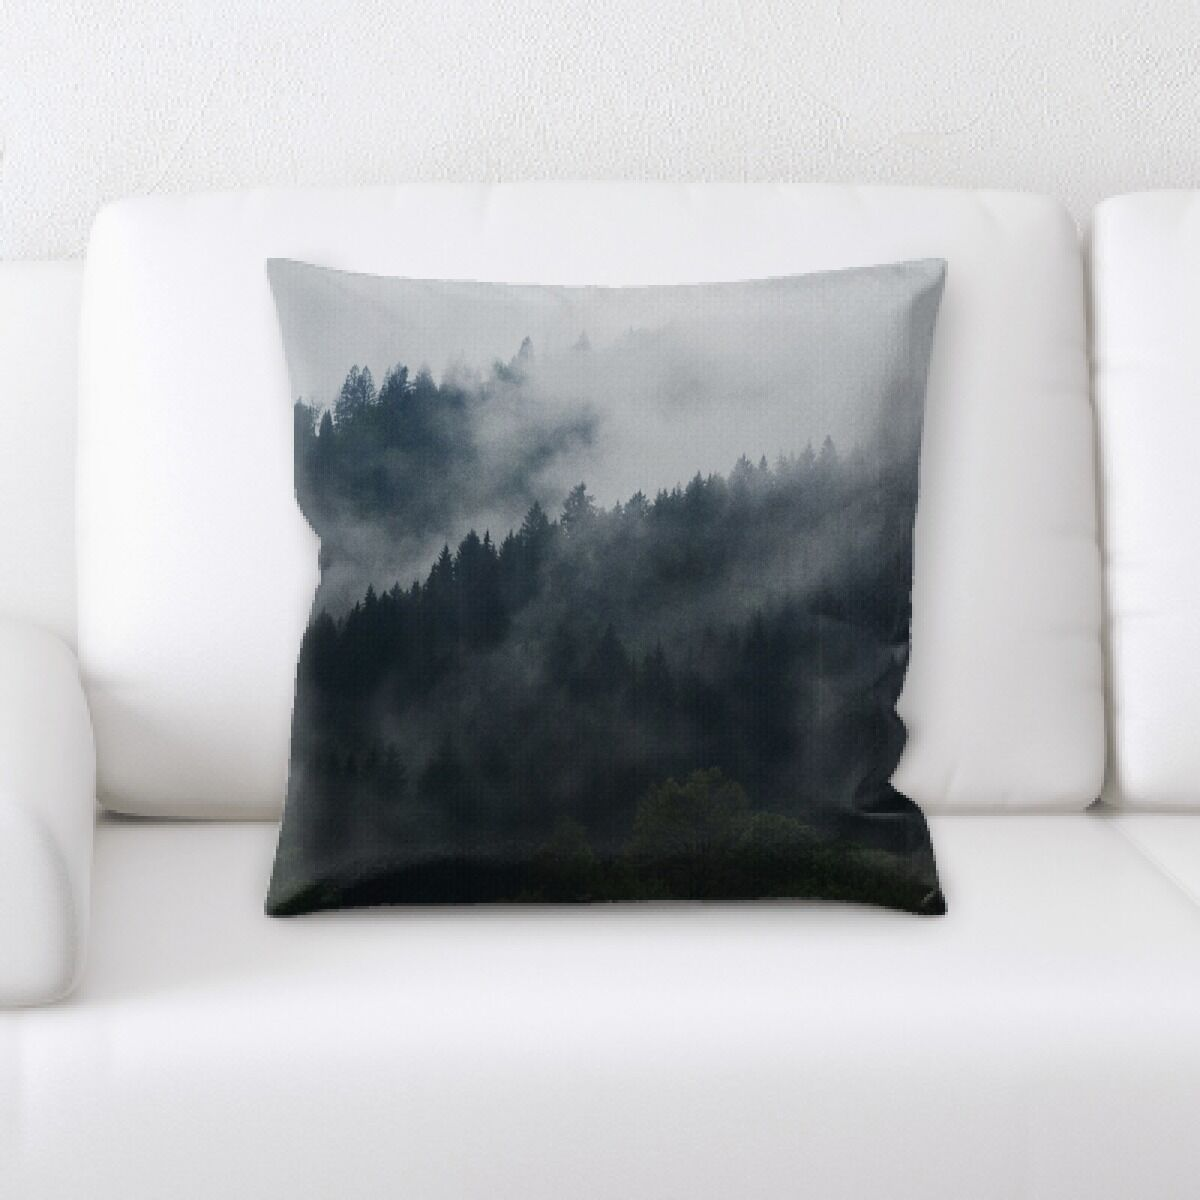 Lacy (245) Throw Pillow